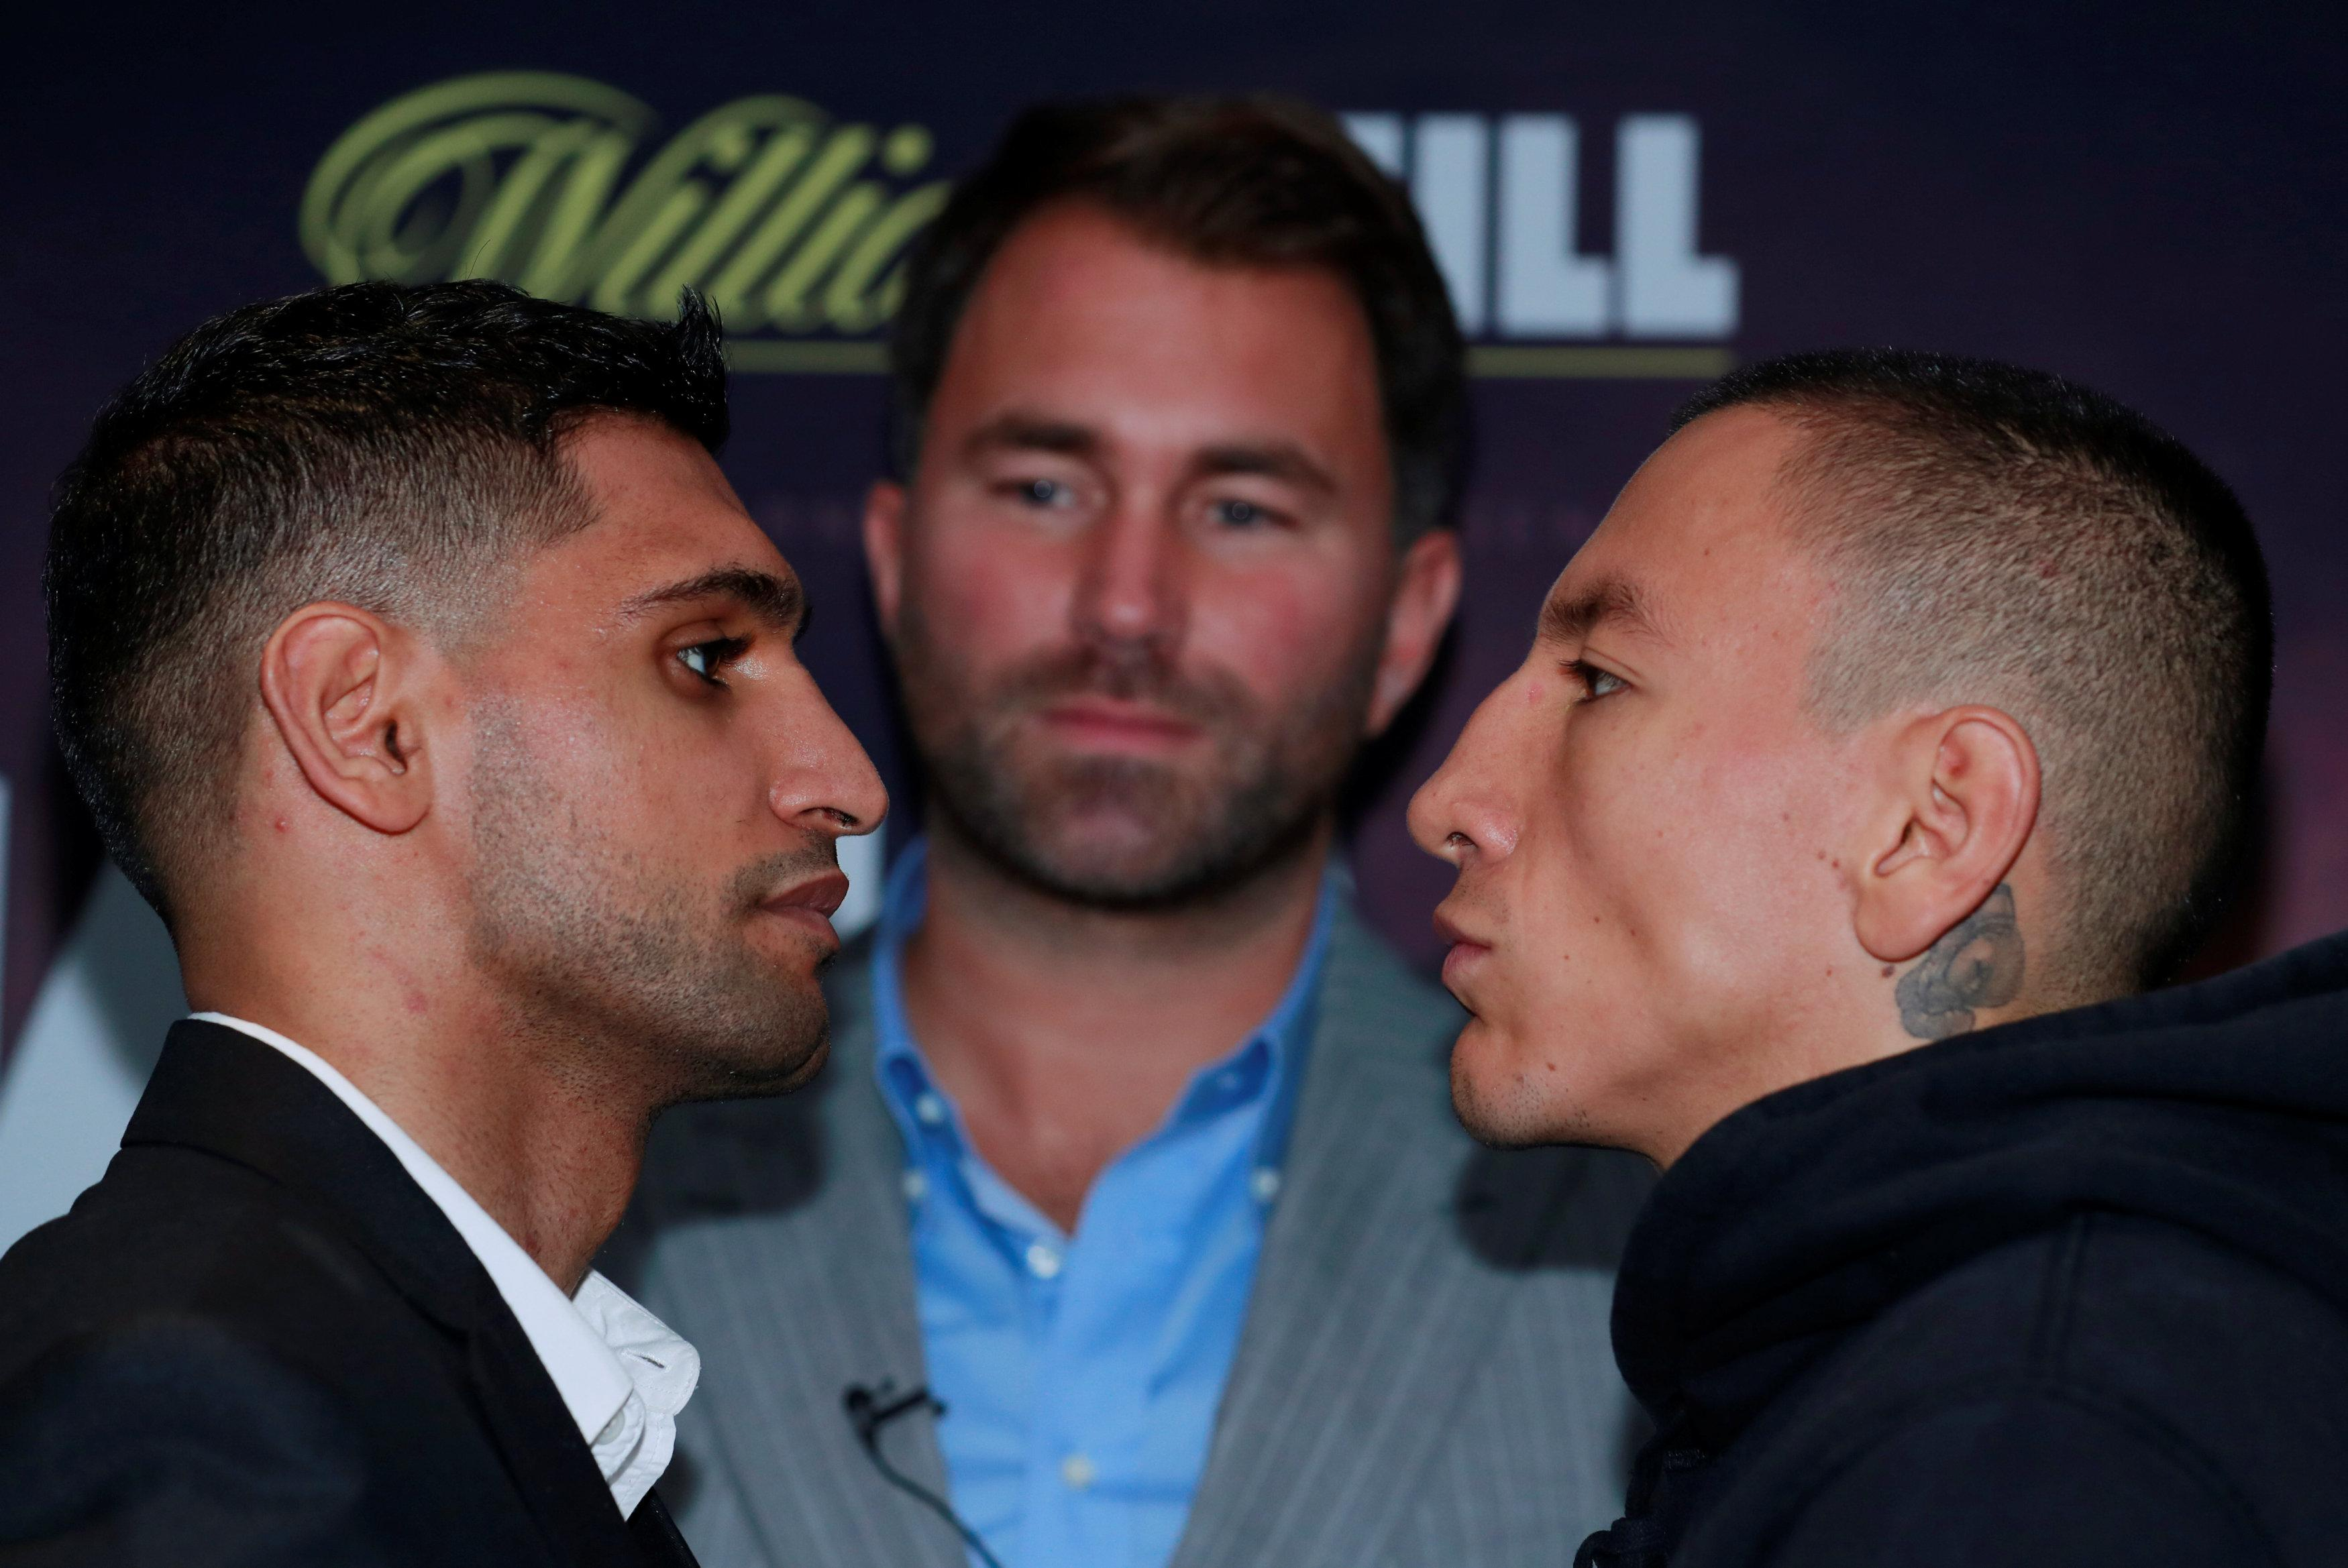 Khan faces Samuel Vargas this weekend and knows he needs to get the job done to keep alive a brook fight